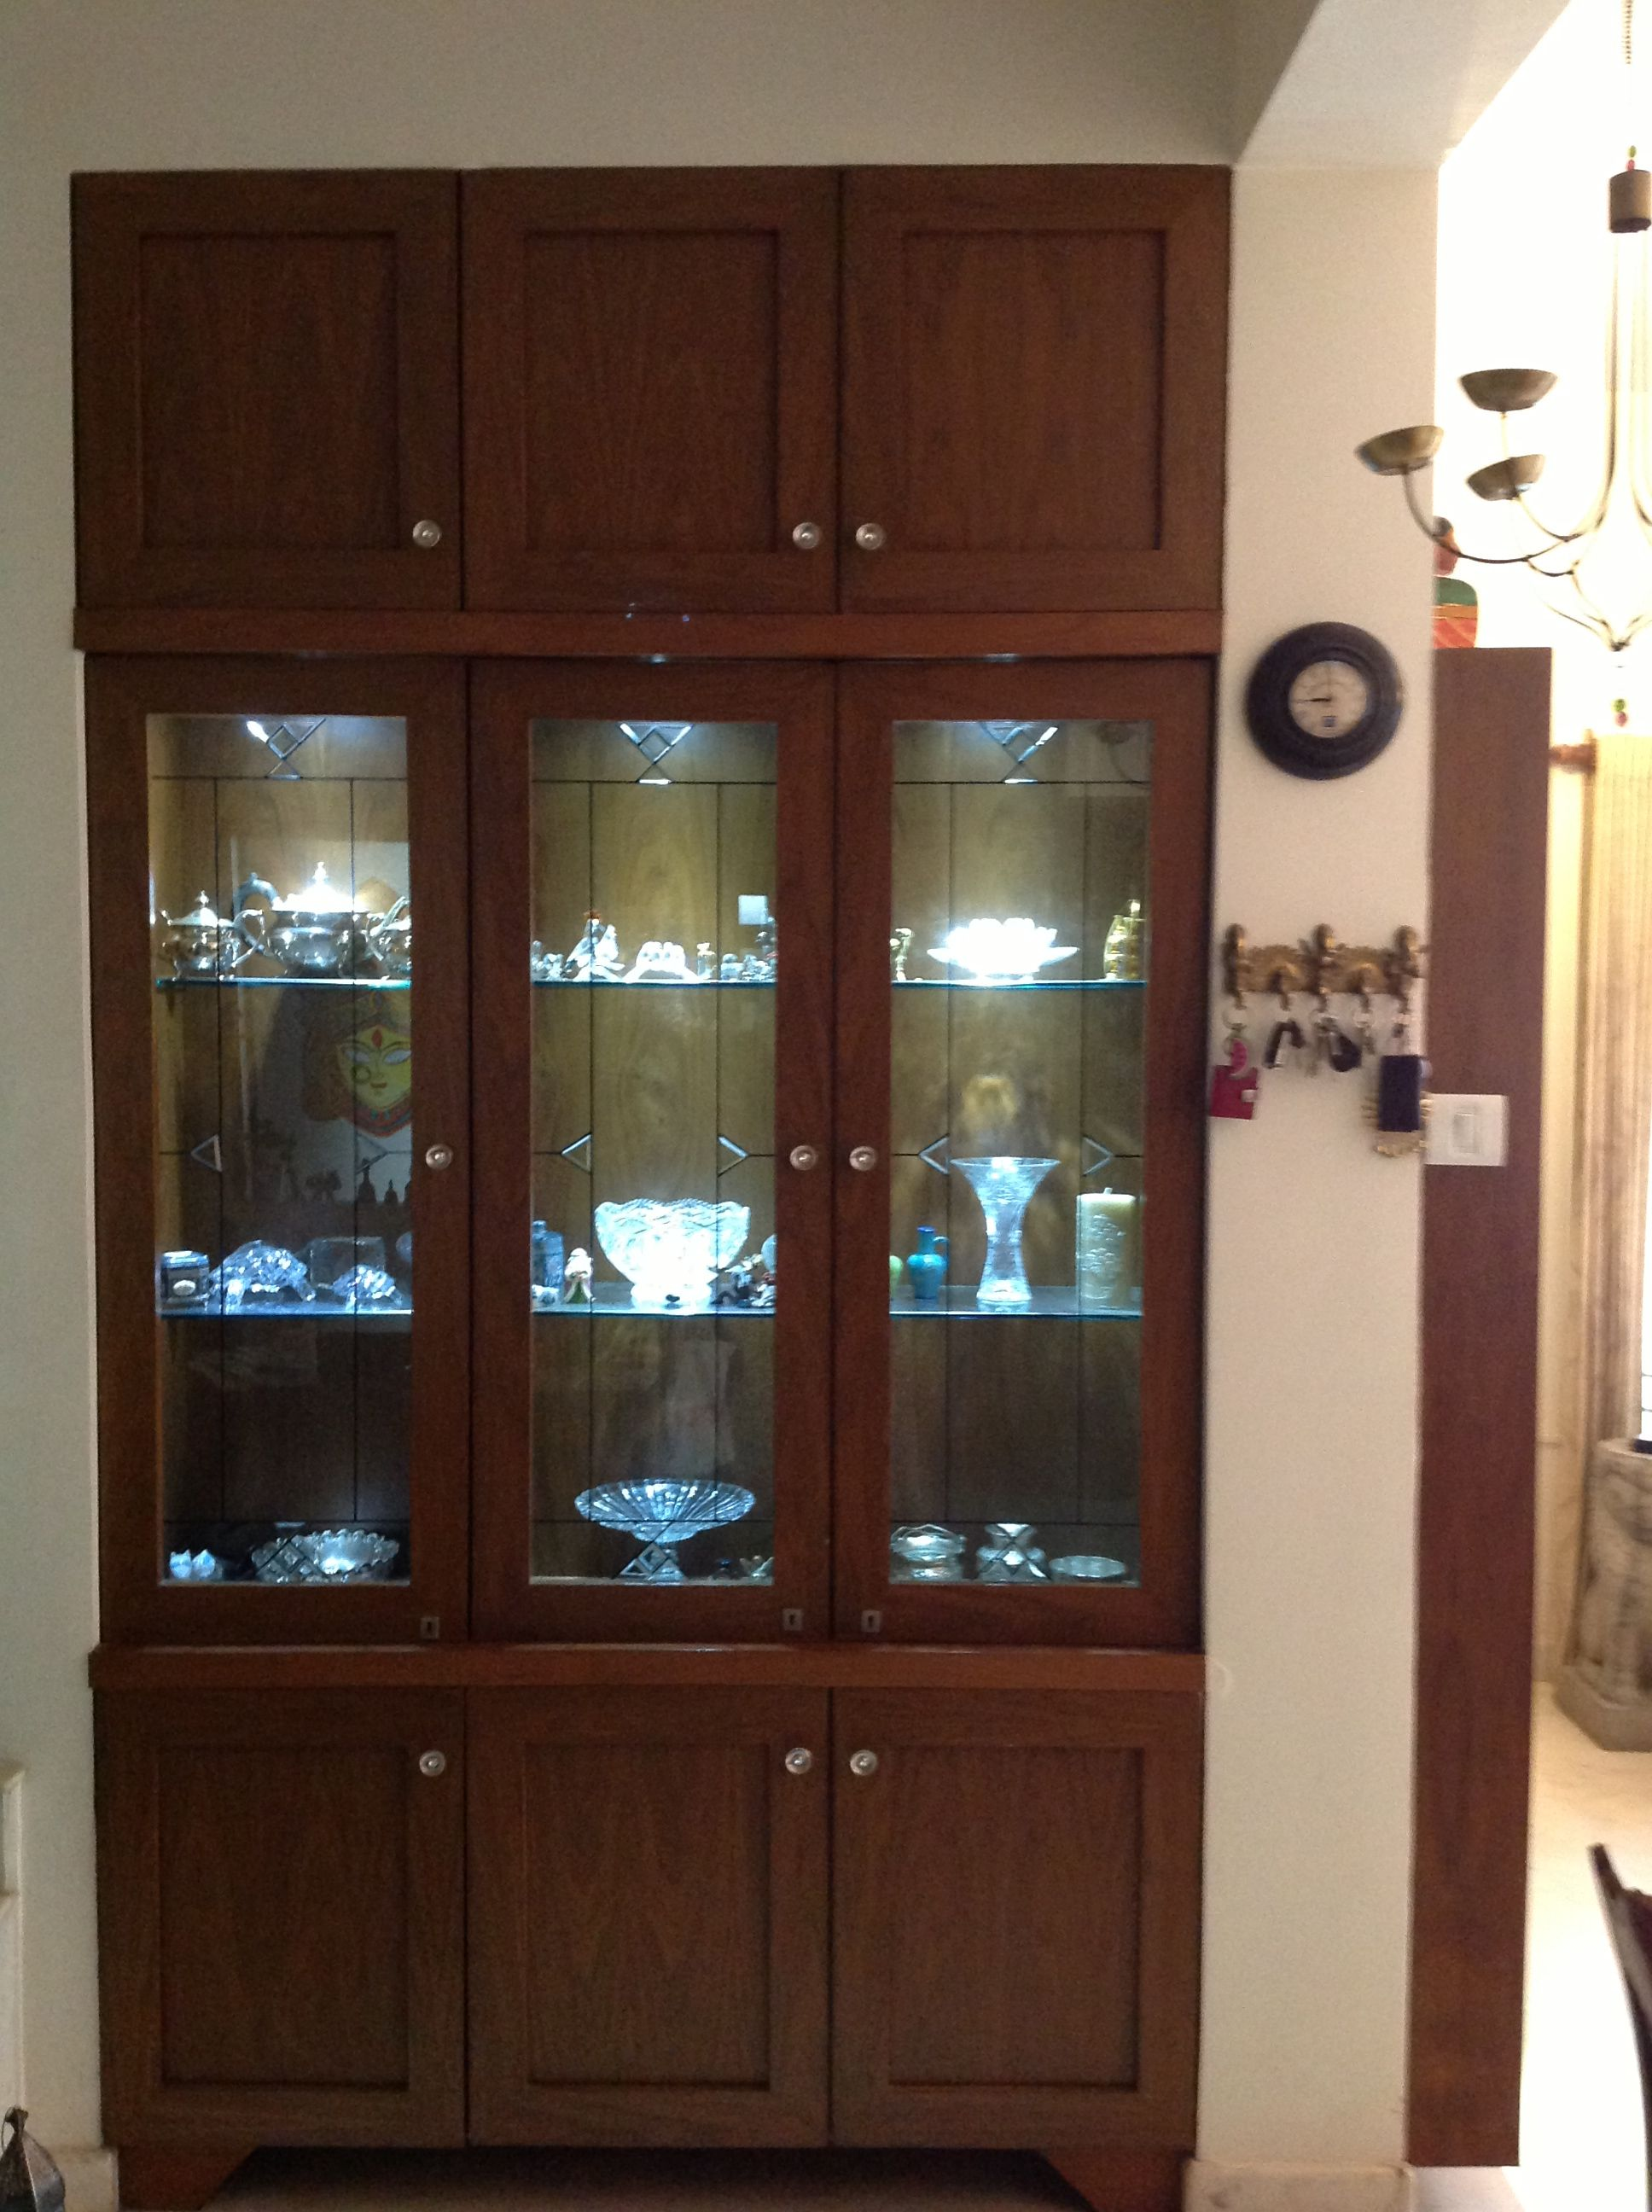 Crockery Unit Made To Order In A Niche That Existed Along With Space To Display Curios Crockery Unit Design Crockery Unit Crockery Cabinet